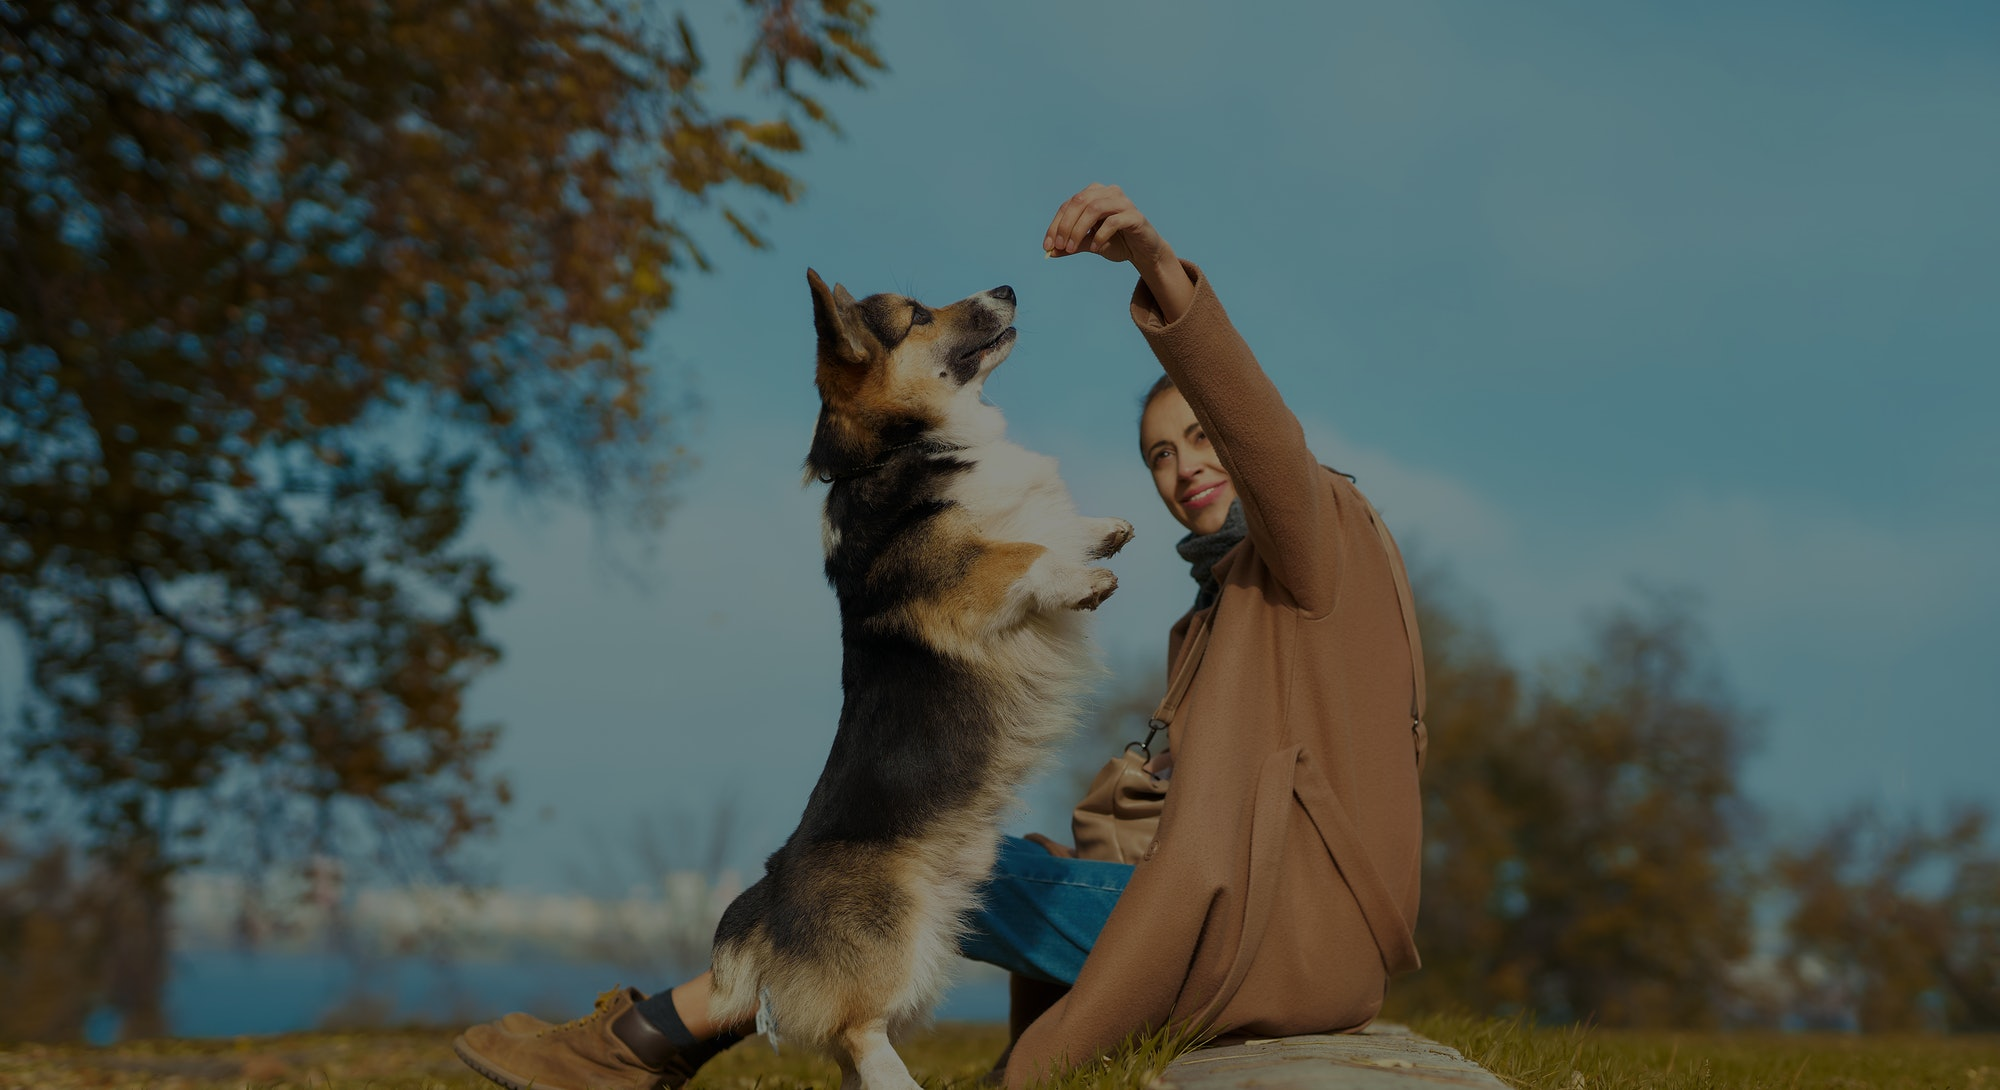 woman with dog on grass in autumn park, training Welsh Corgi dog outdoors. pet standing on hind paws and asking food. friendship dog and human, dog training